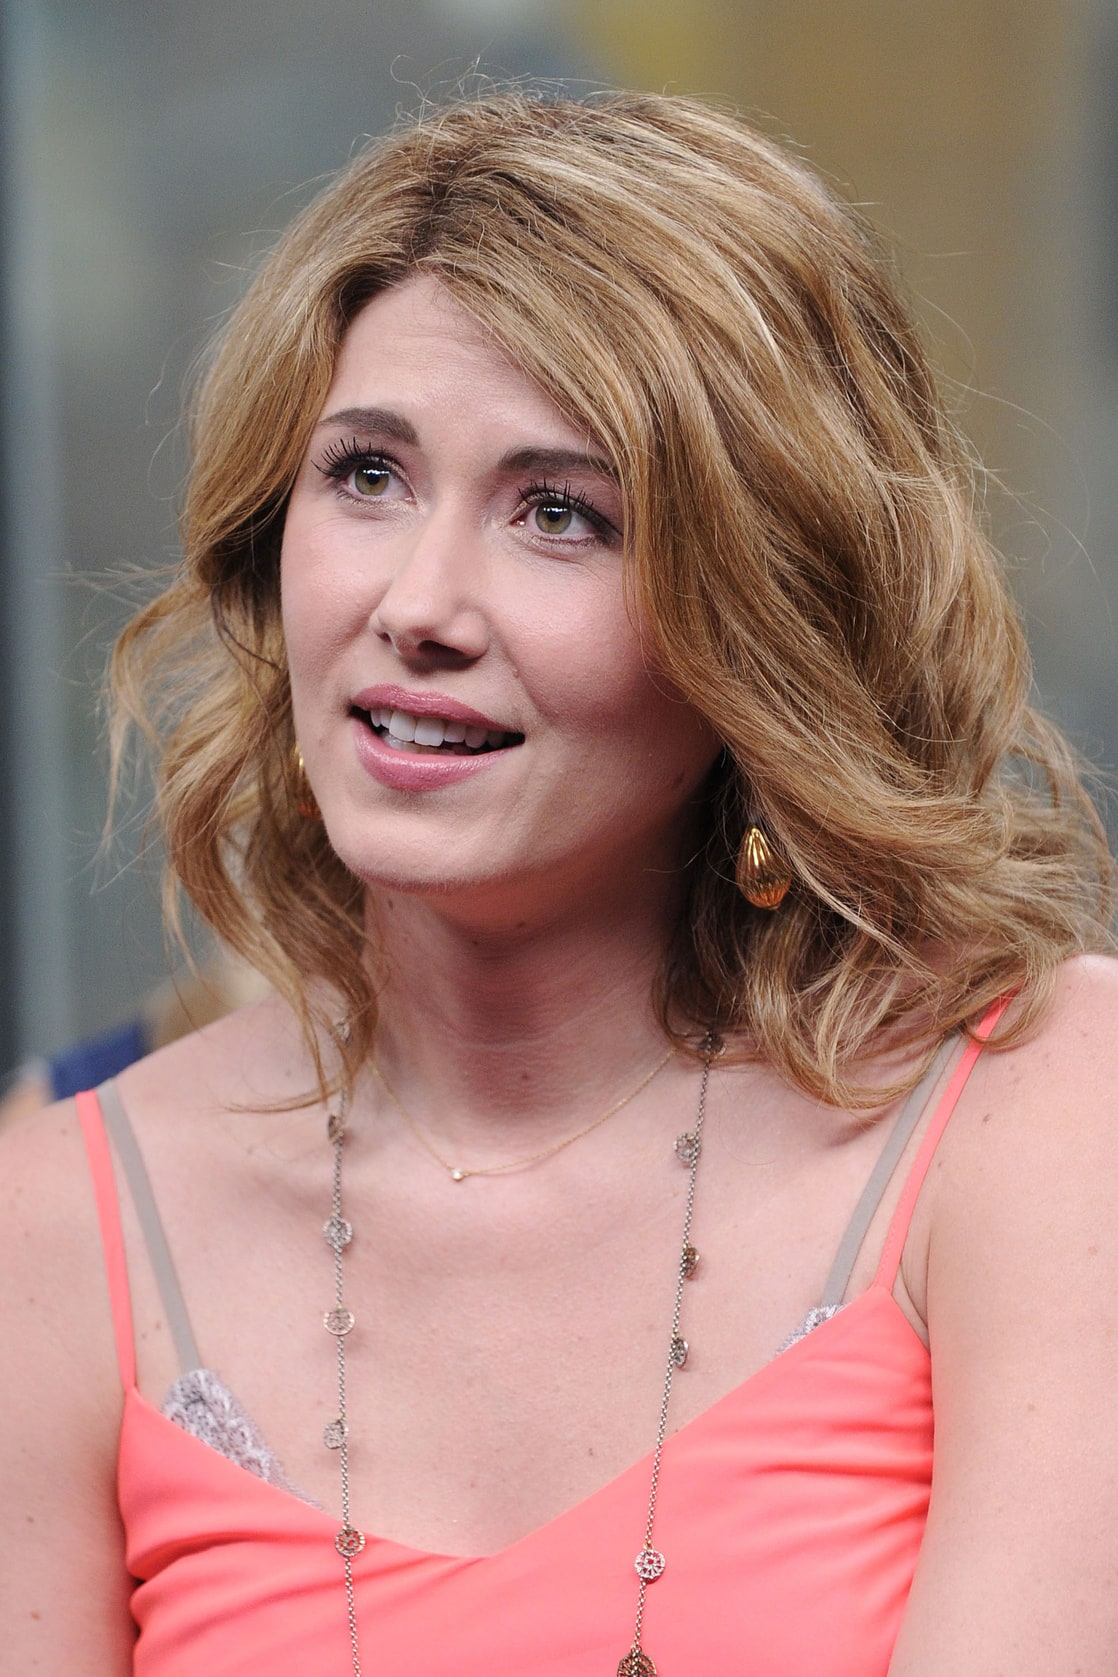 Jewel Staite Sexy Pics picture of jewel staite